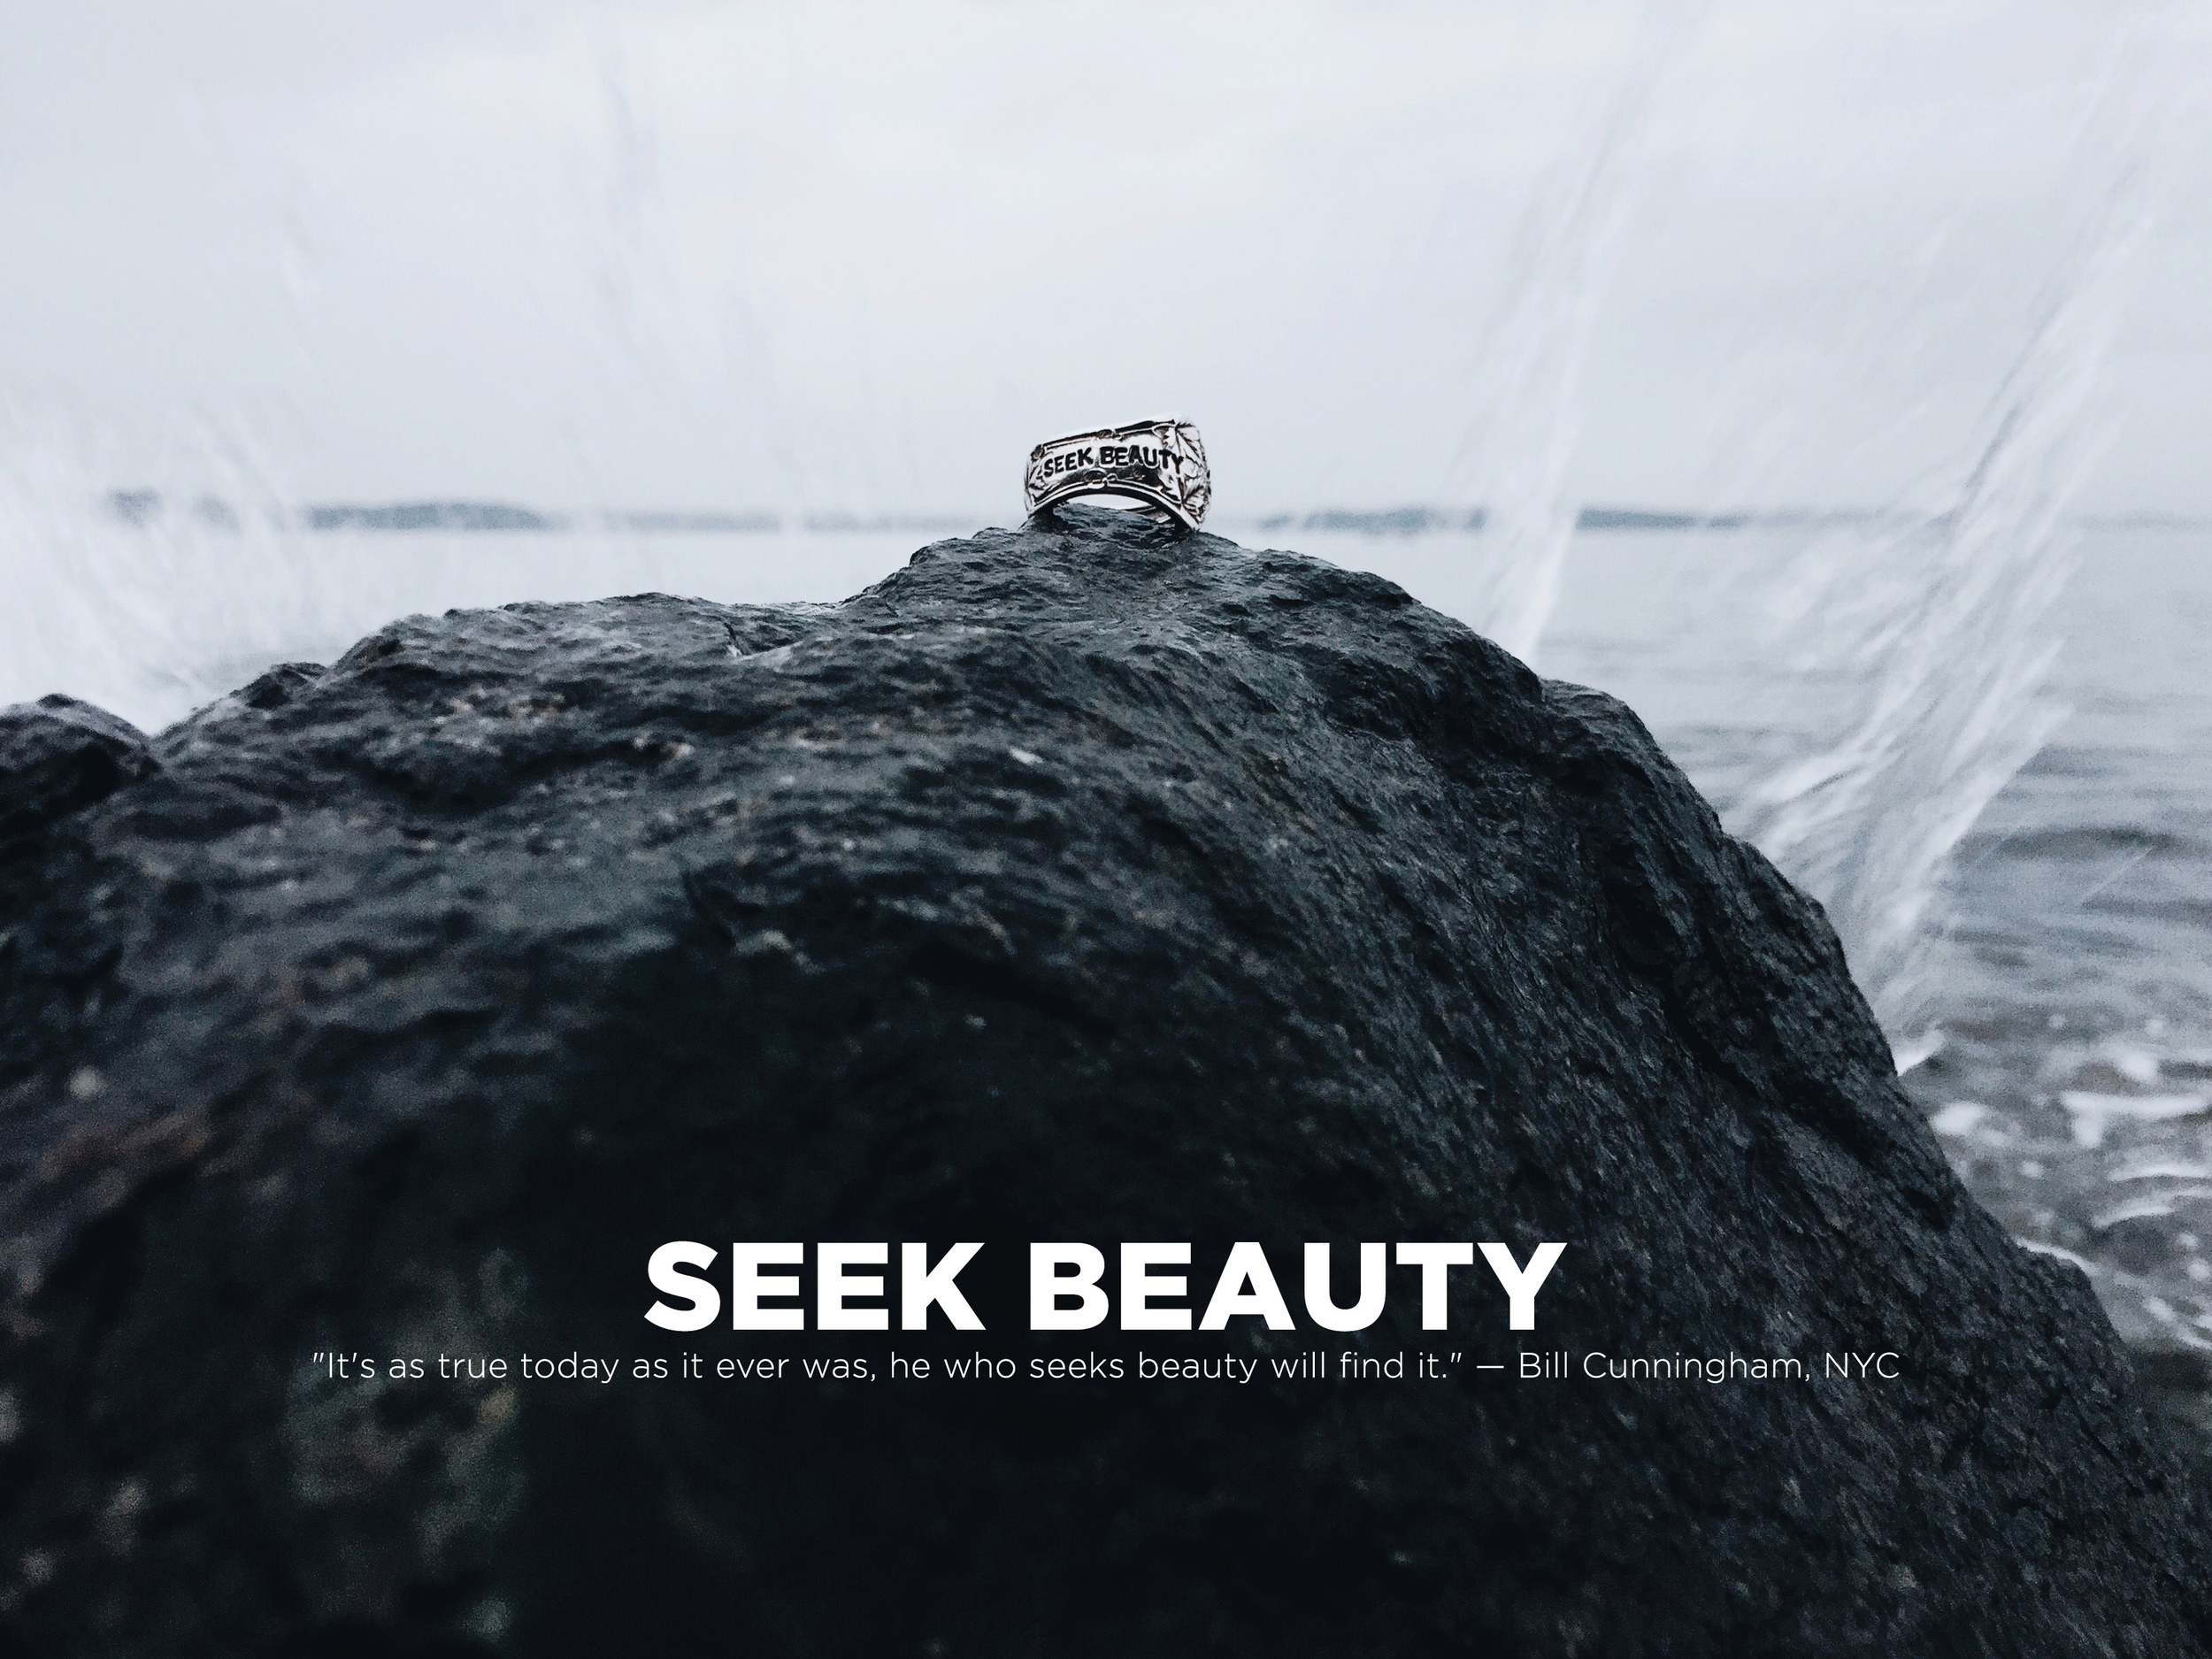 seek beauty spoon ring.jpg